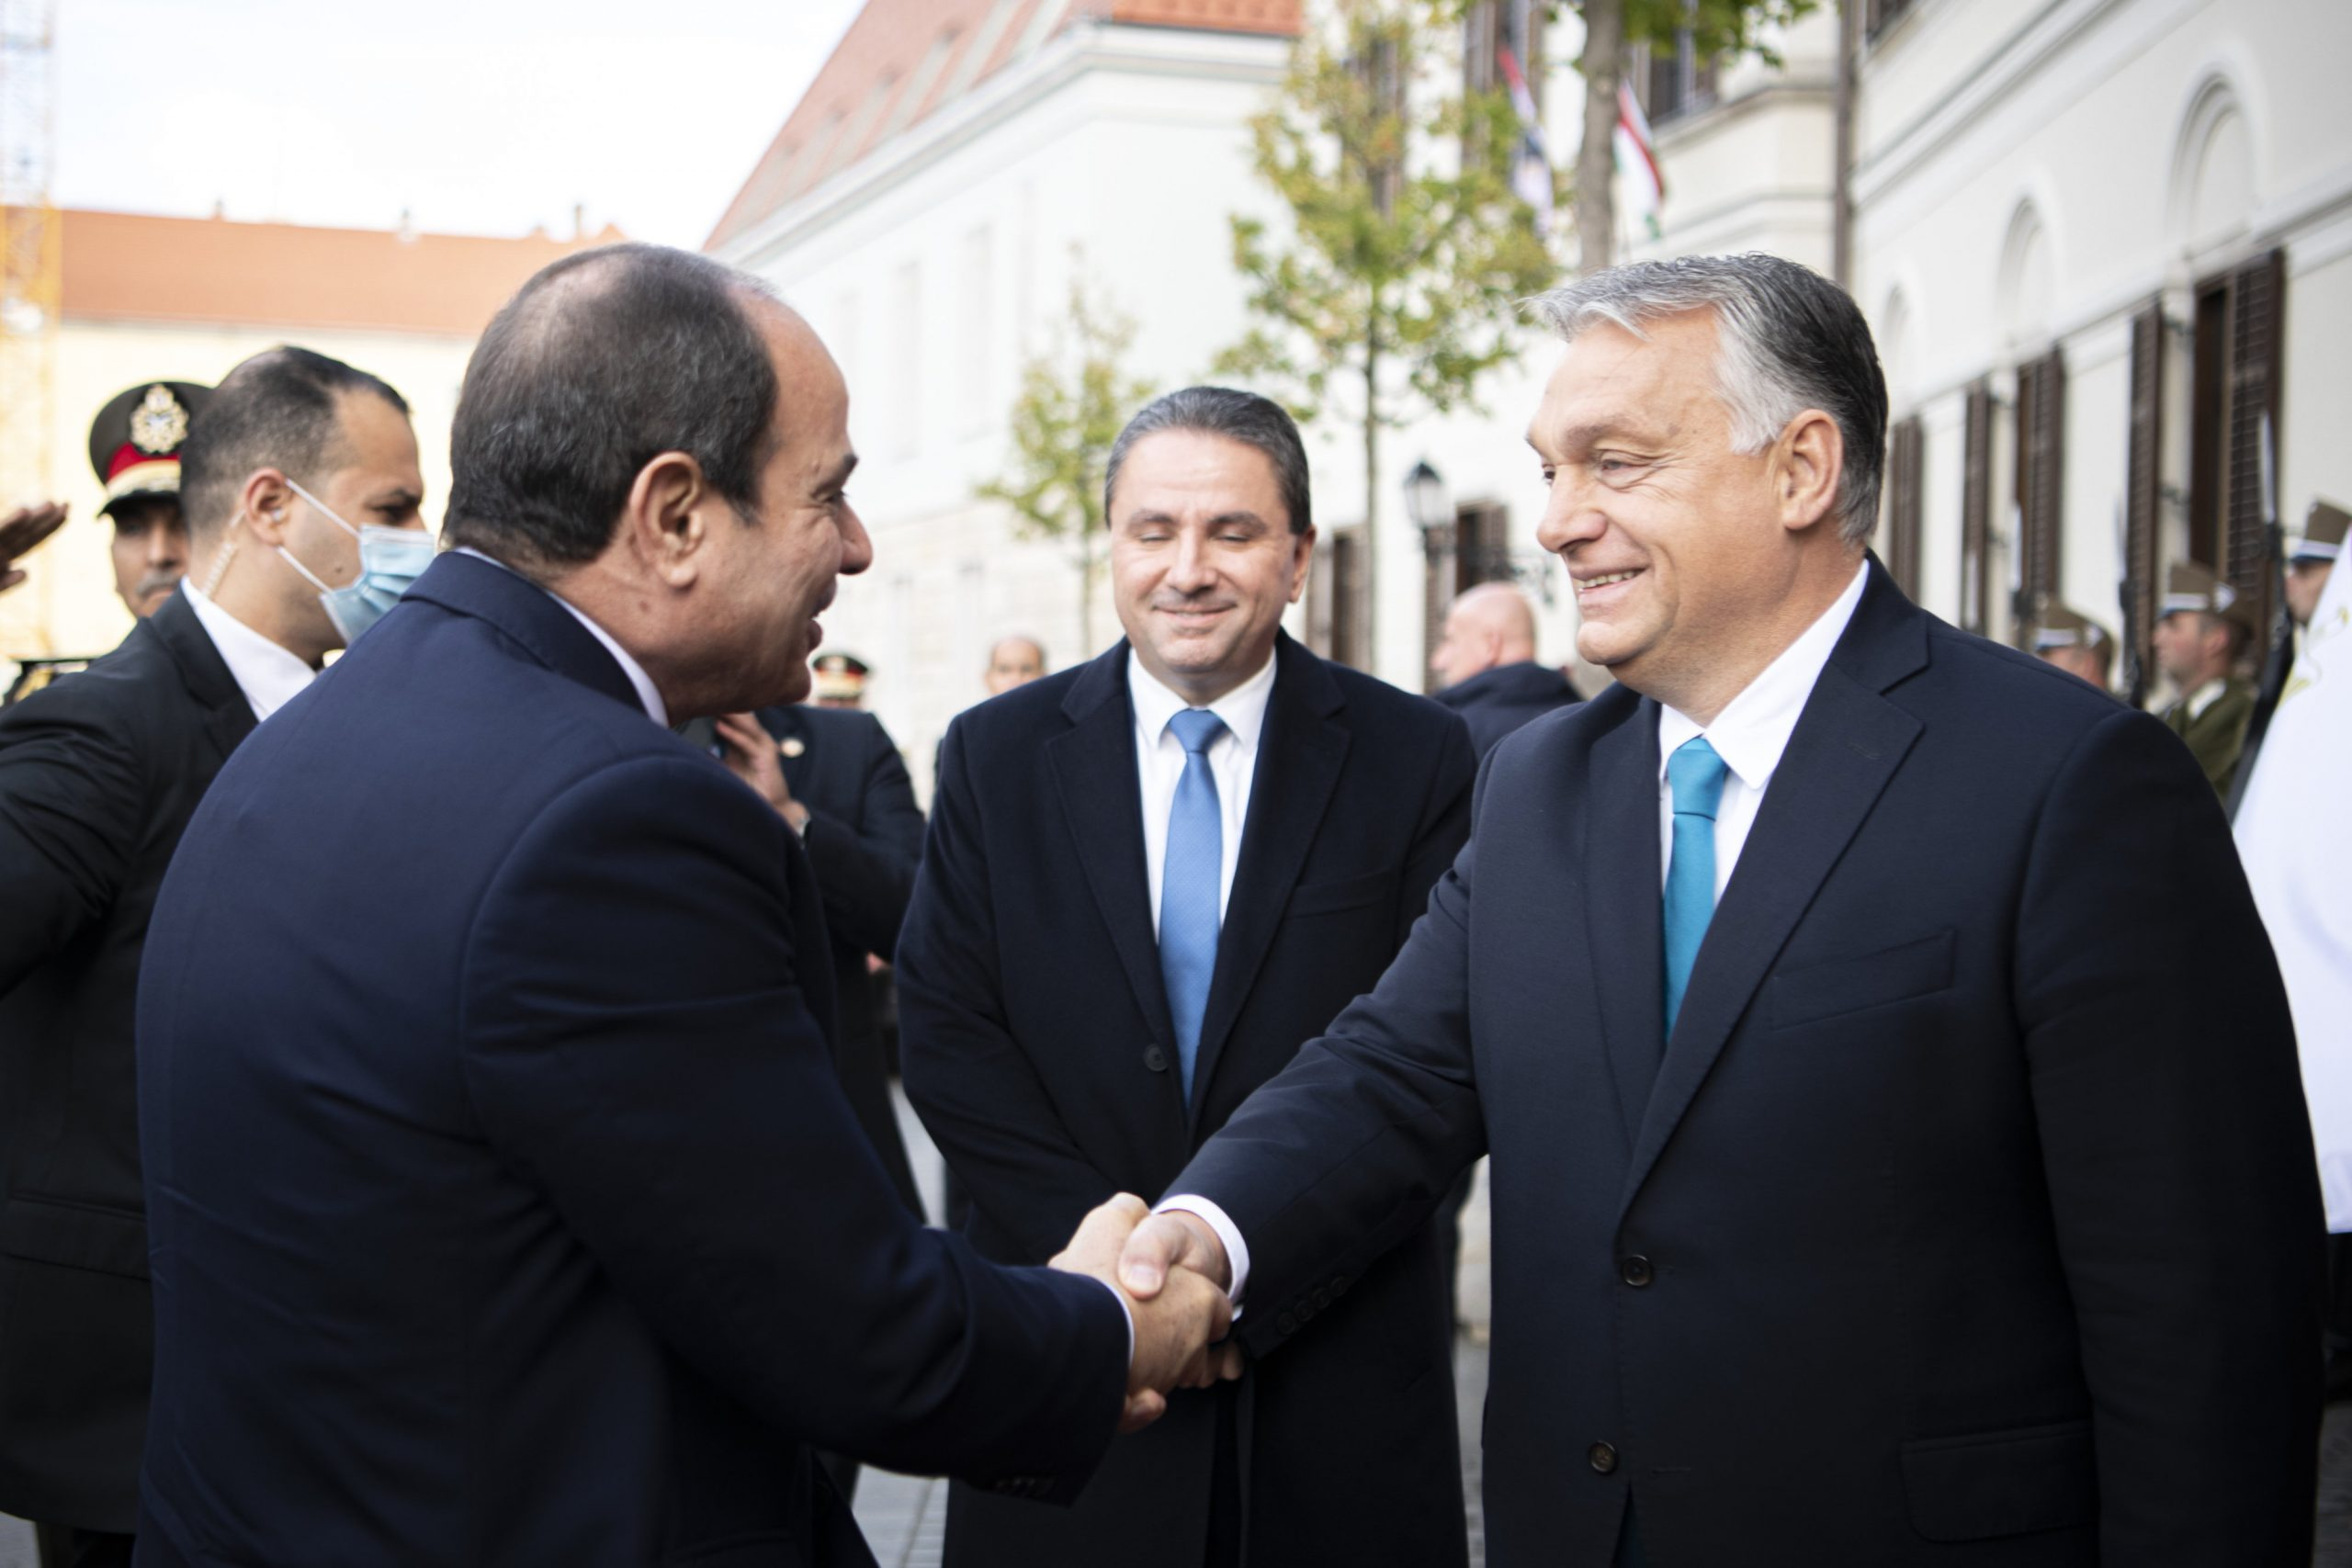 Orbán Meets el-Sisi: Egypt's Contribution 'Huge' to Europe's Security